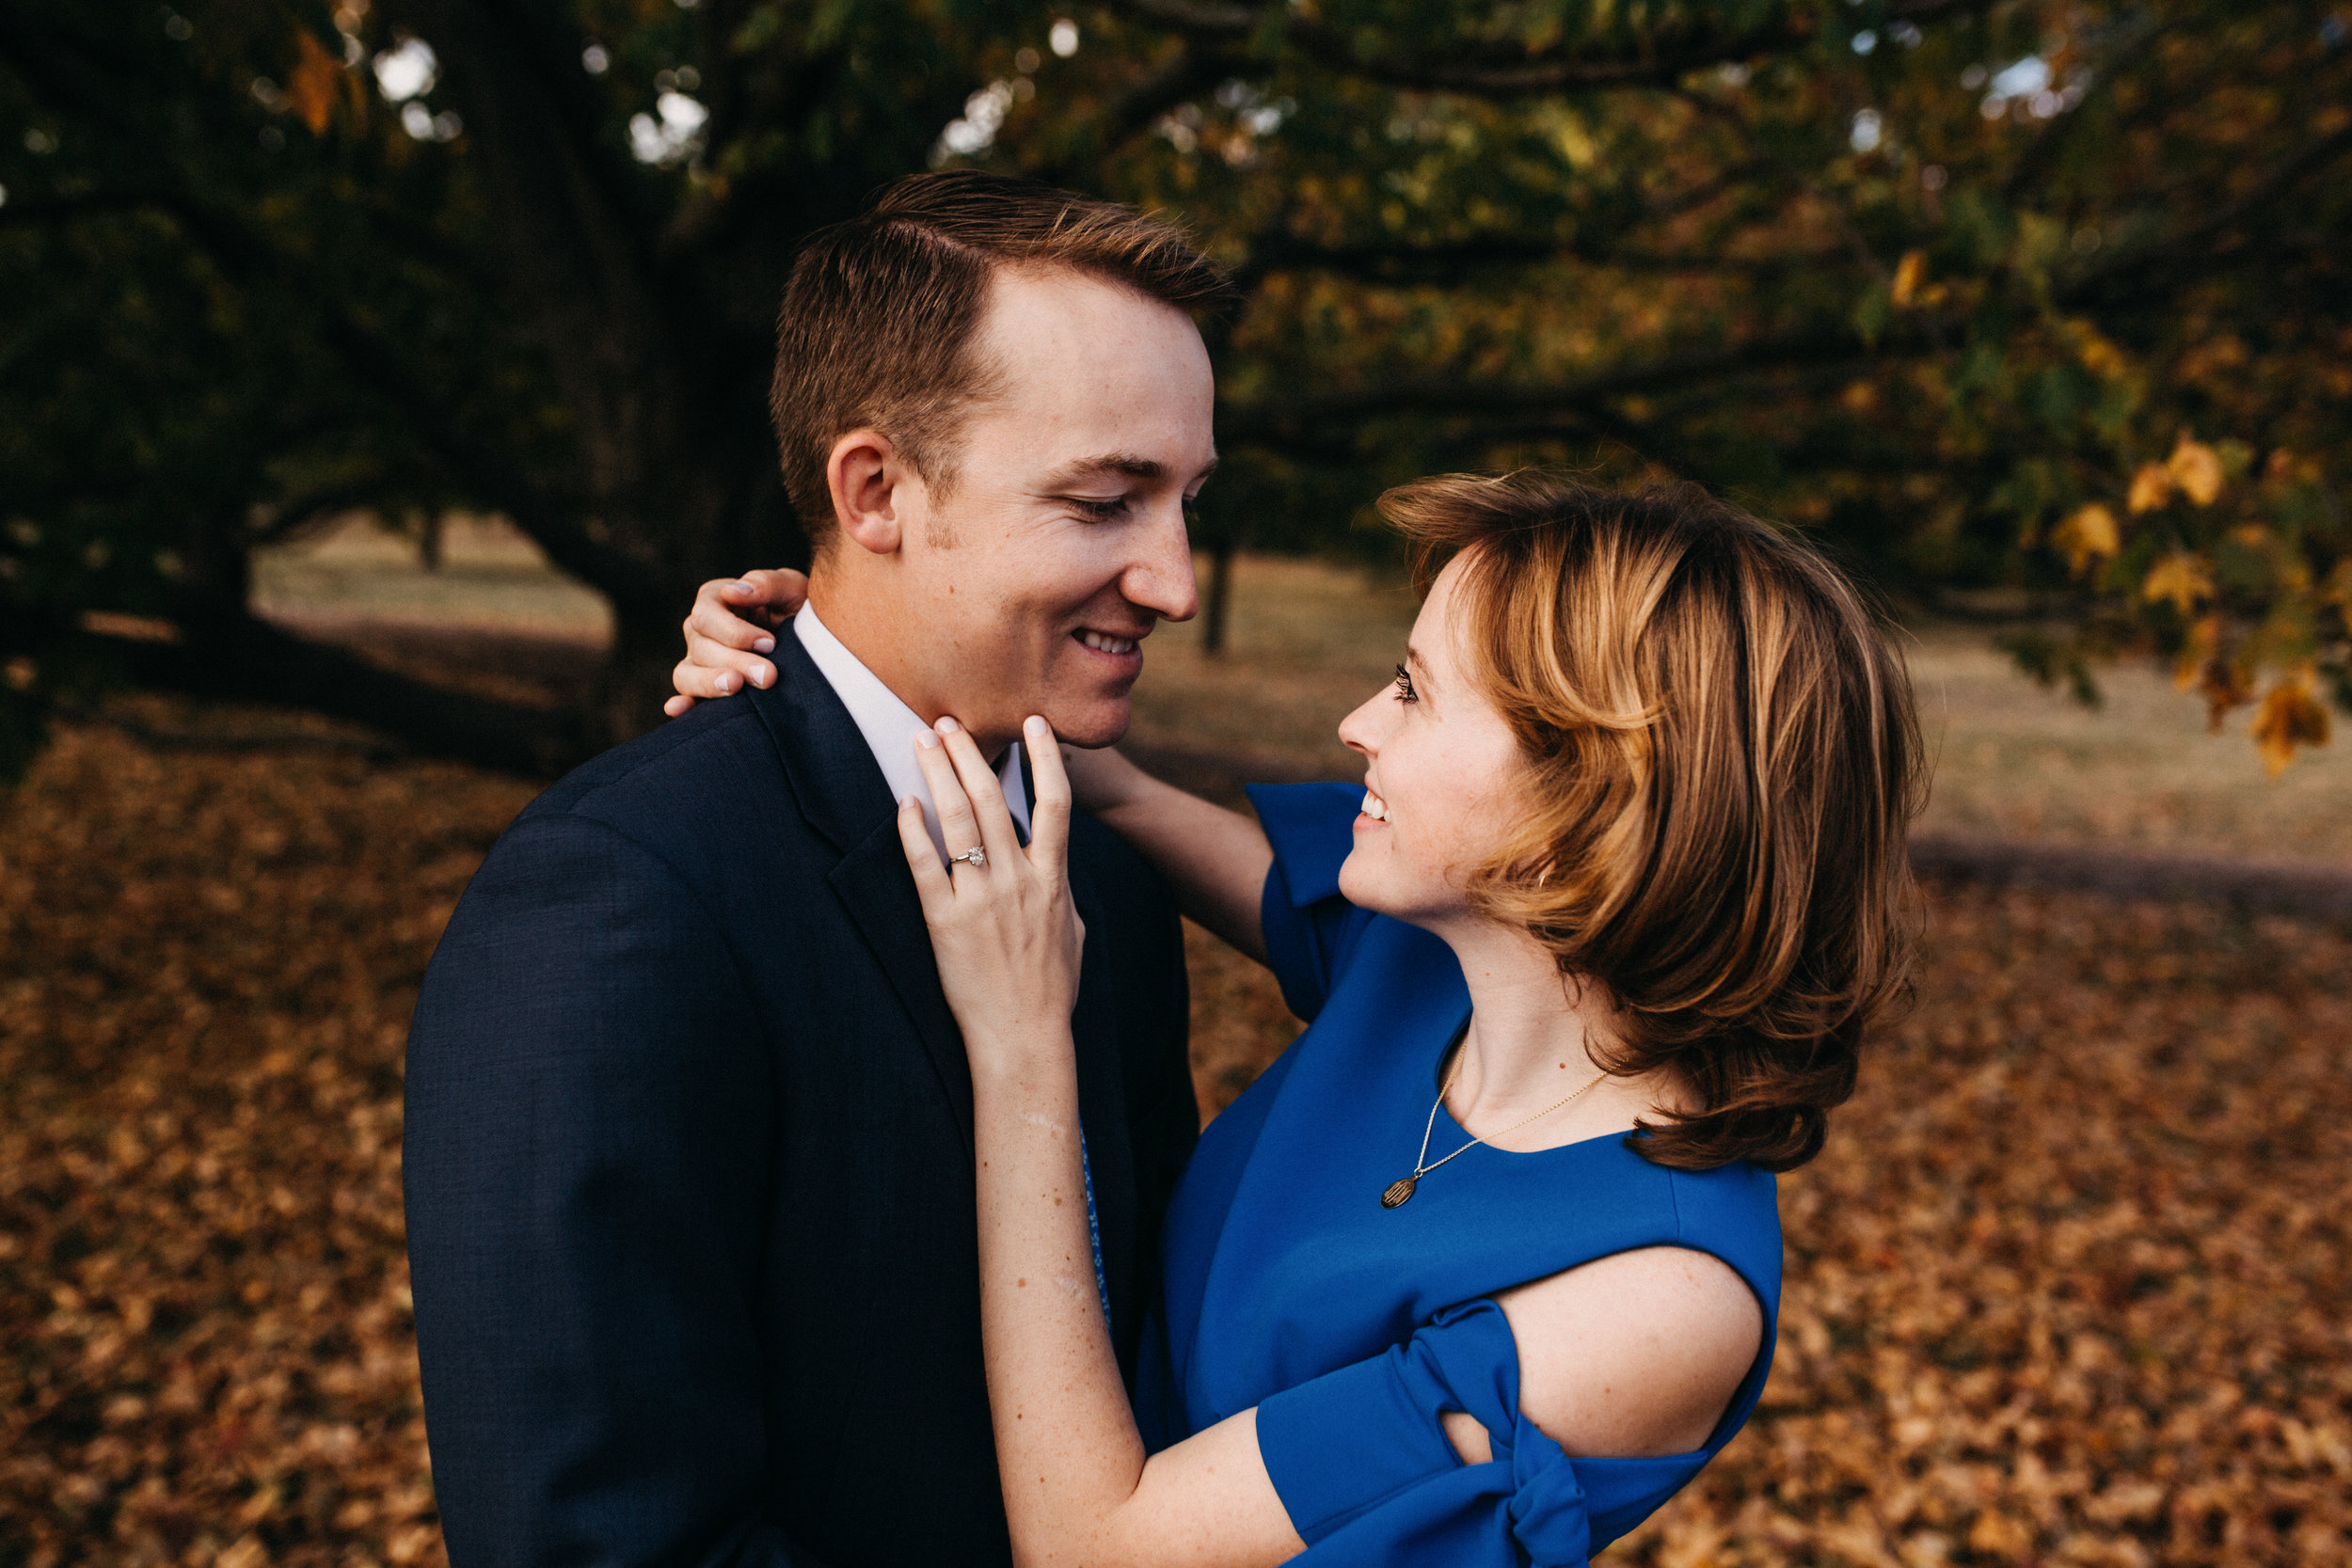 Bridget and Brian - Fall Engagement | The Morton Arboretum | Lisle, IL